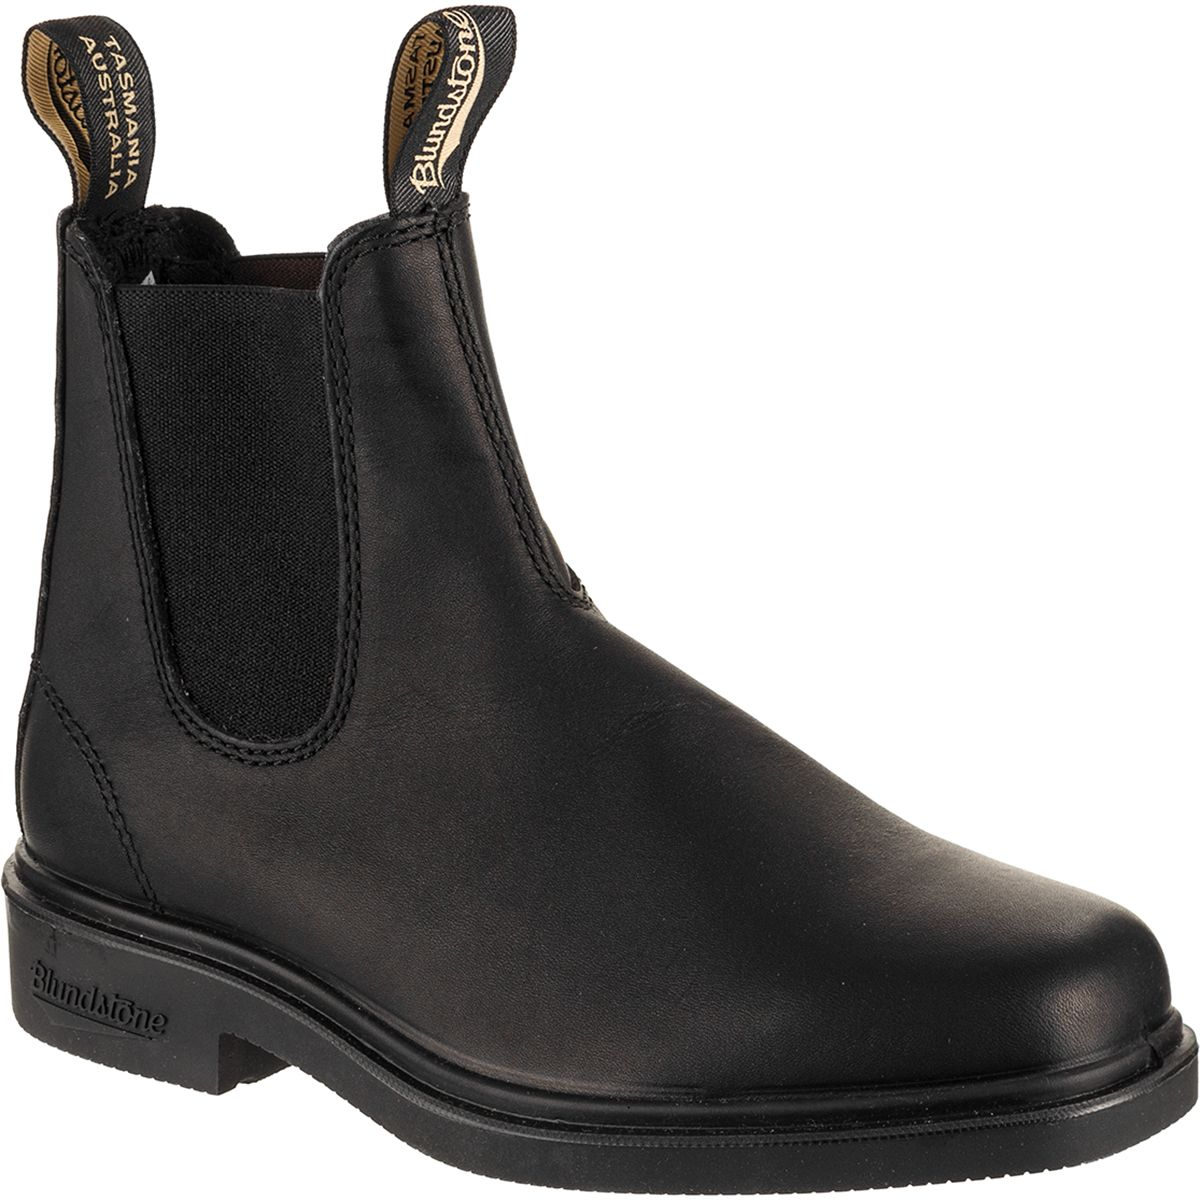 Scenic Oregon 7 Day Road Trip Exploring the Mountains and Coast- Womens Blundstones